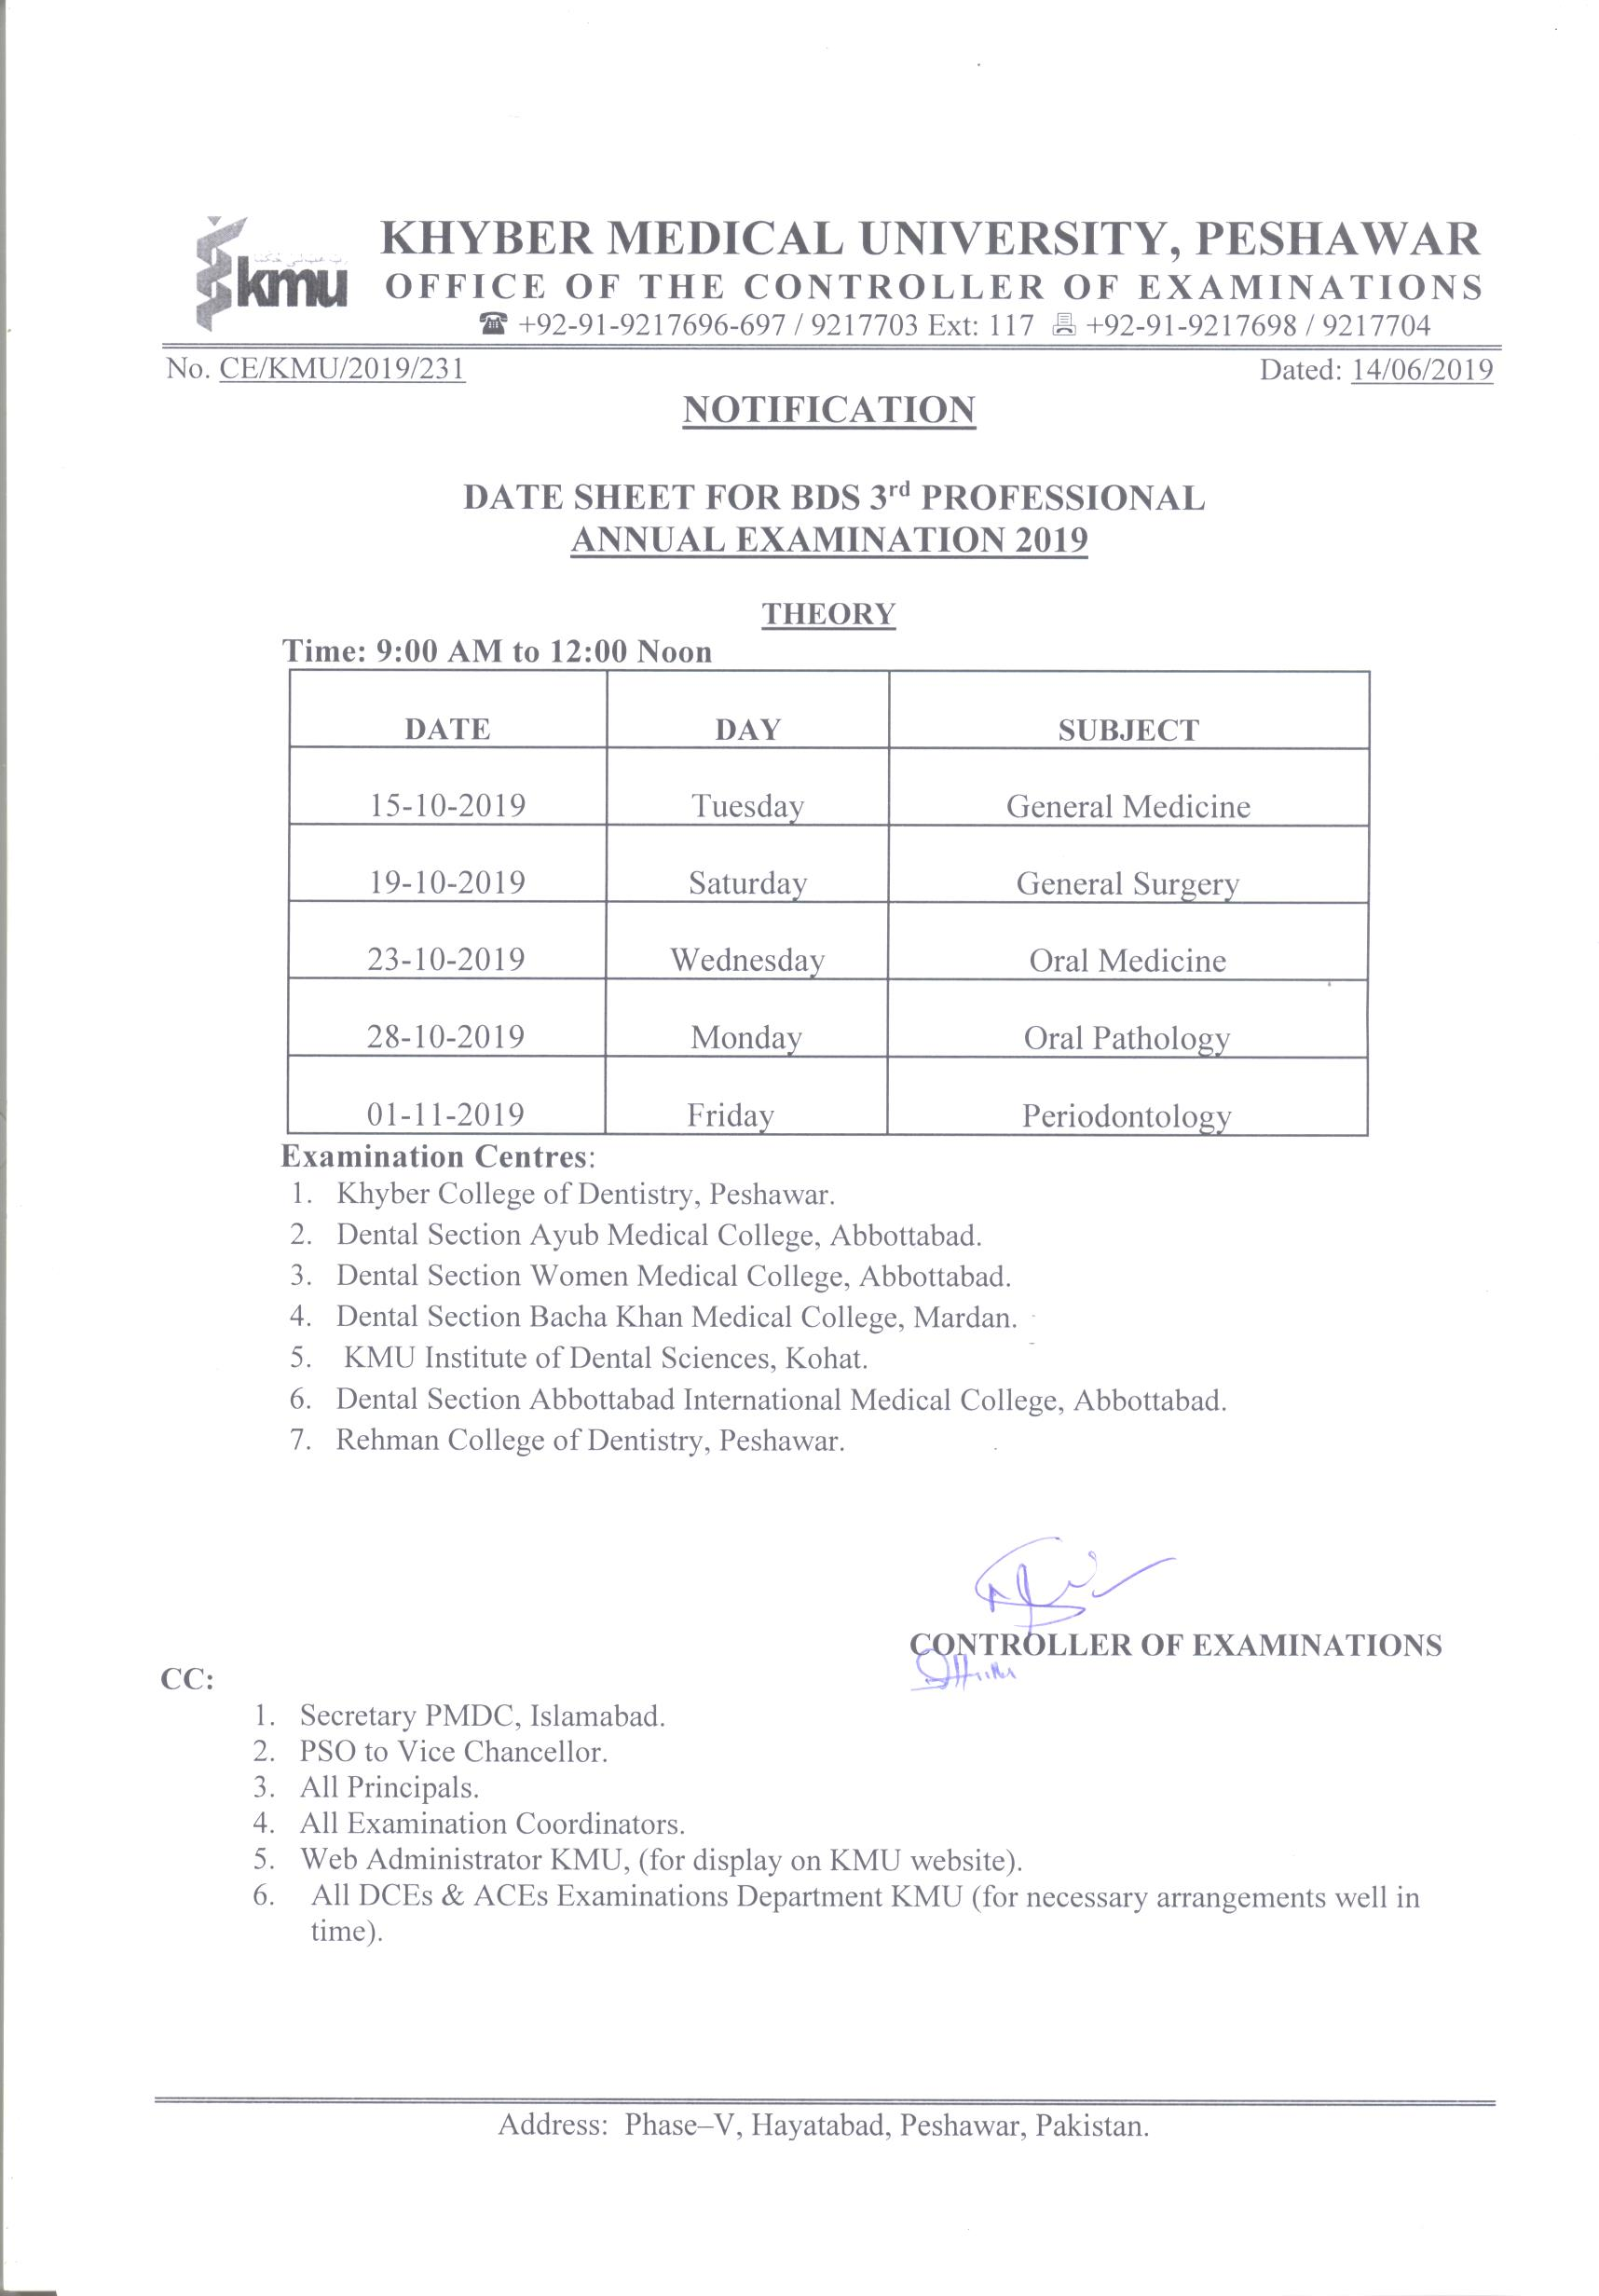 Date Sheets | Khyber Medical University